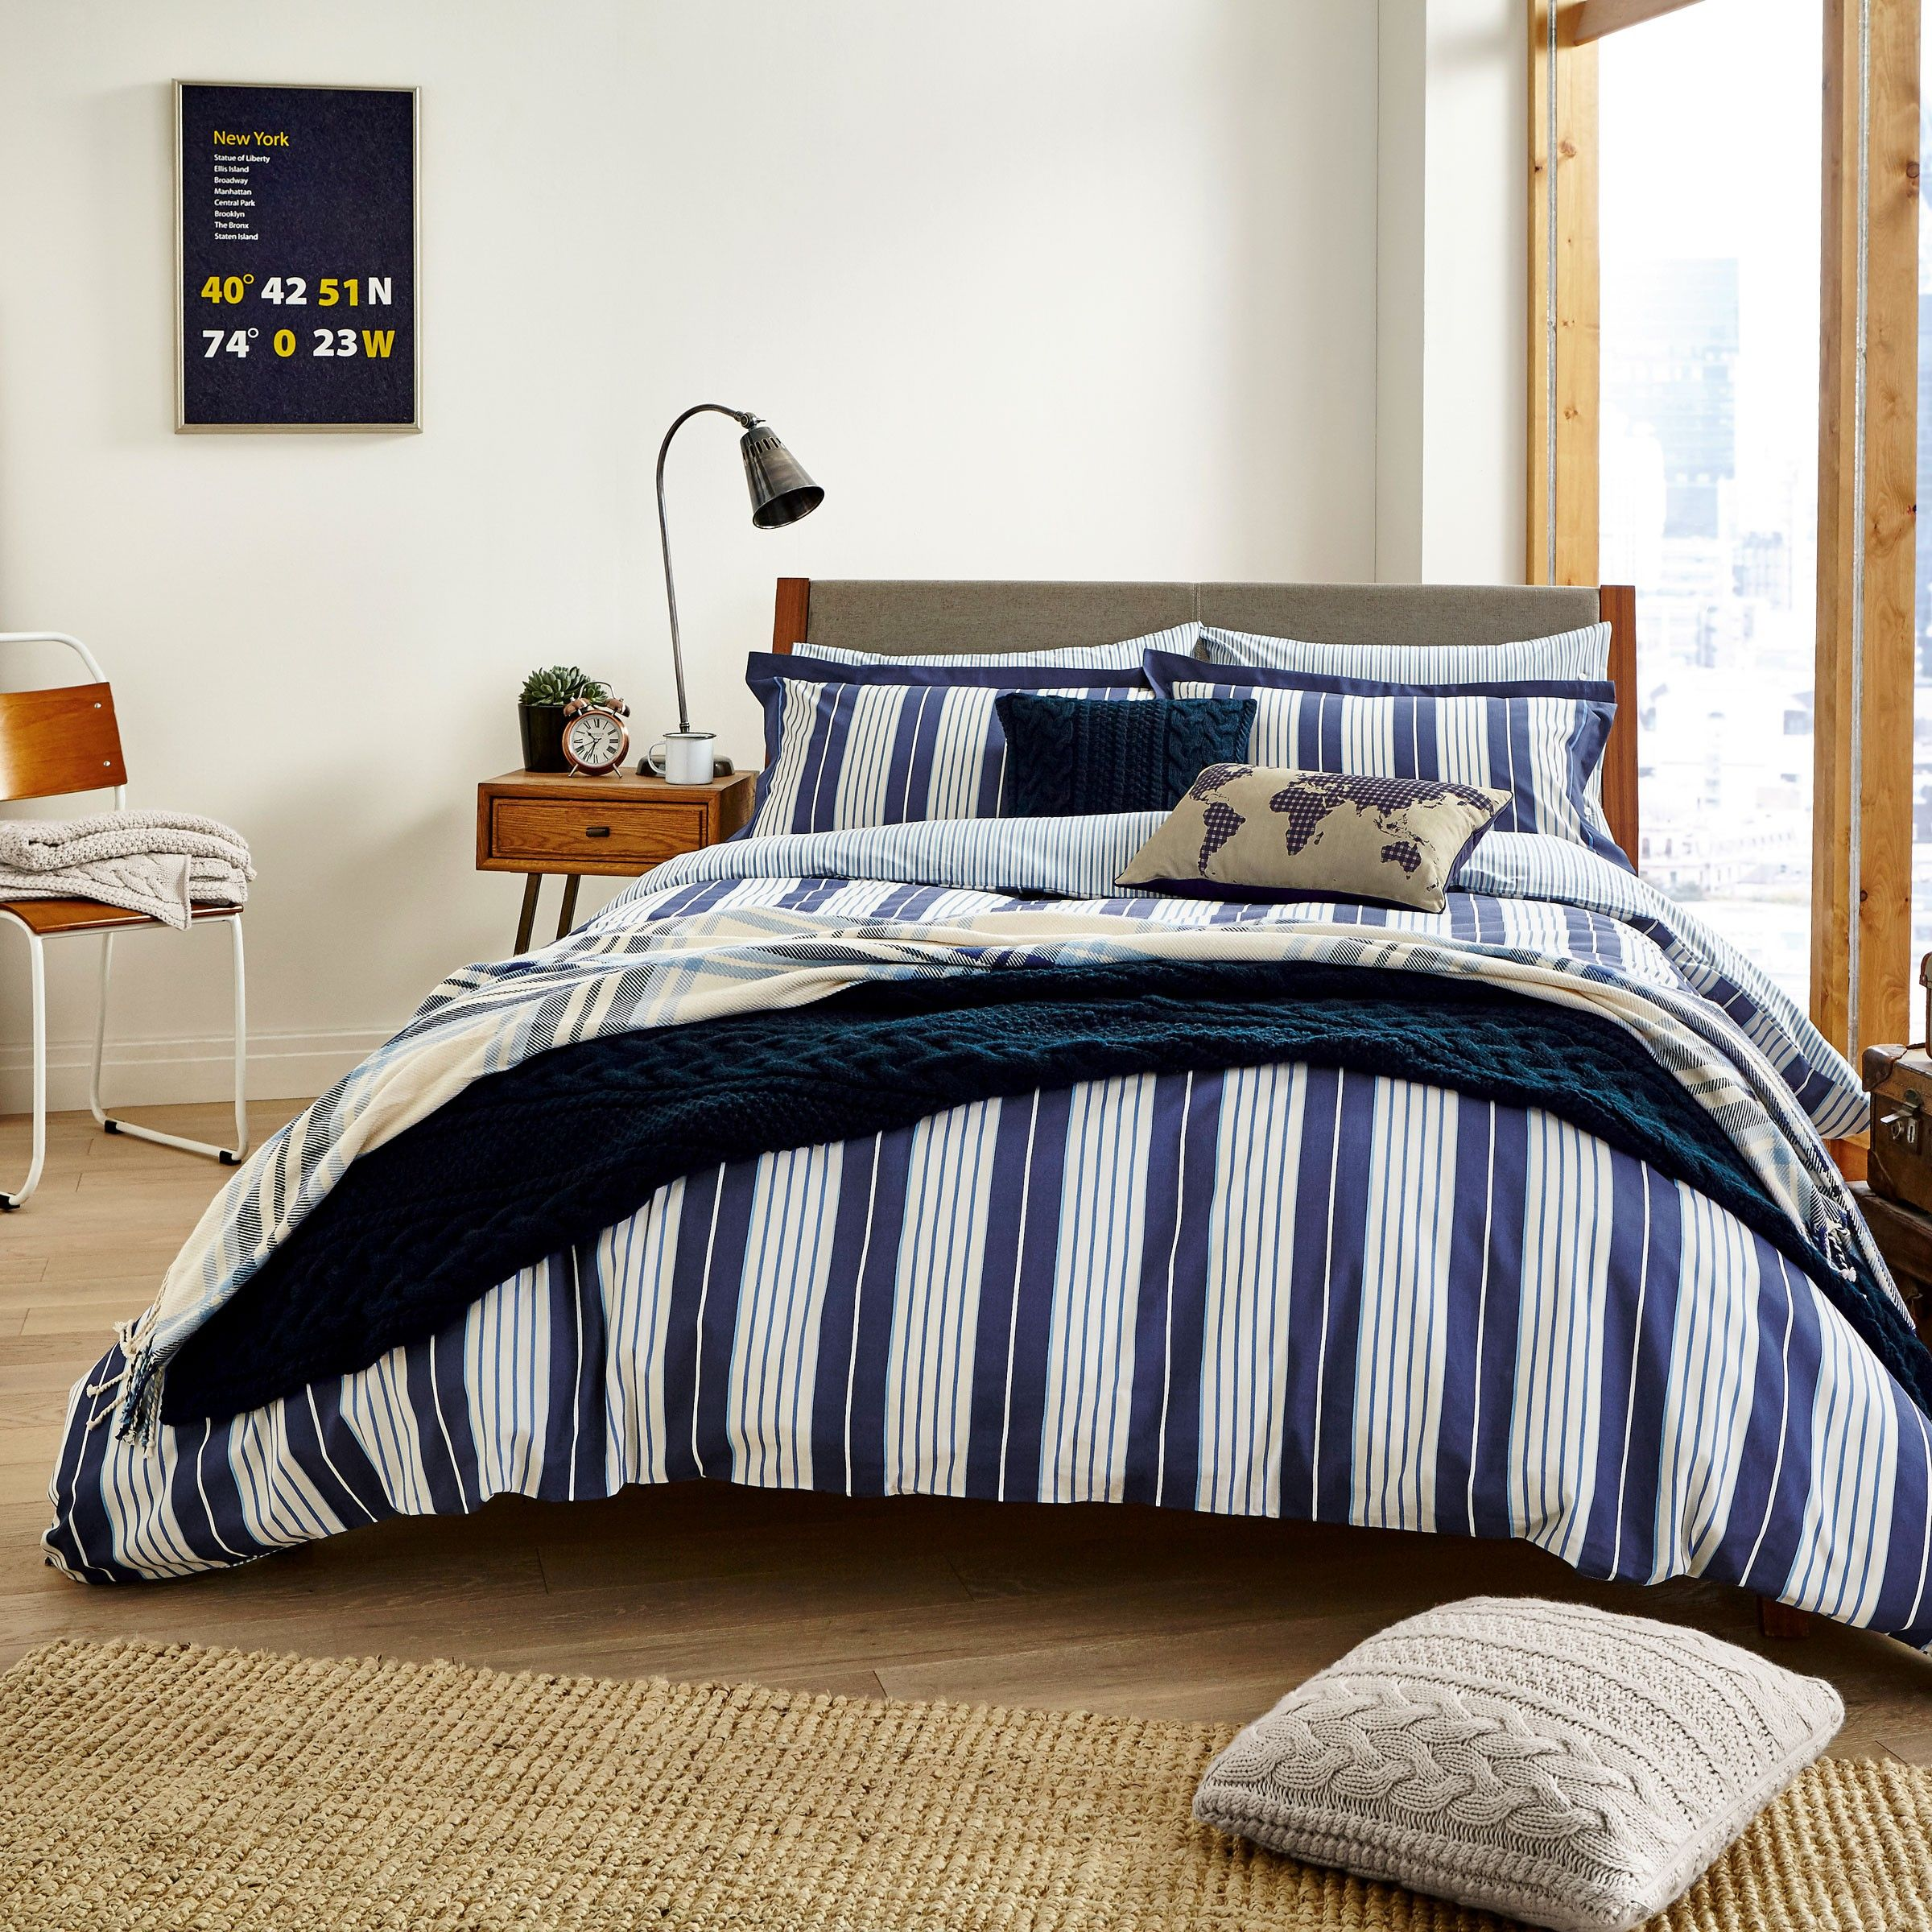 workshop navy s bed ideas bedding striped and fun white nana